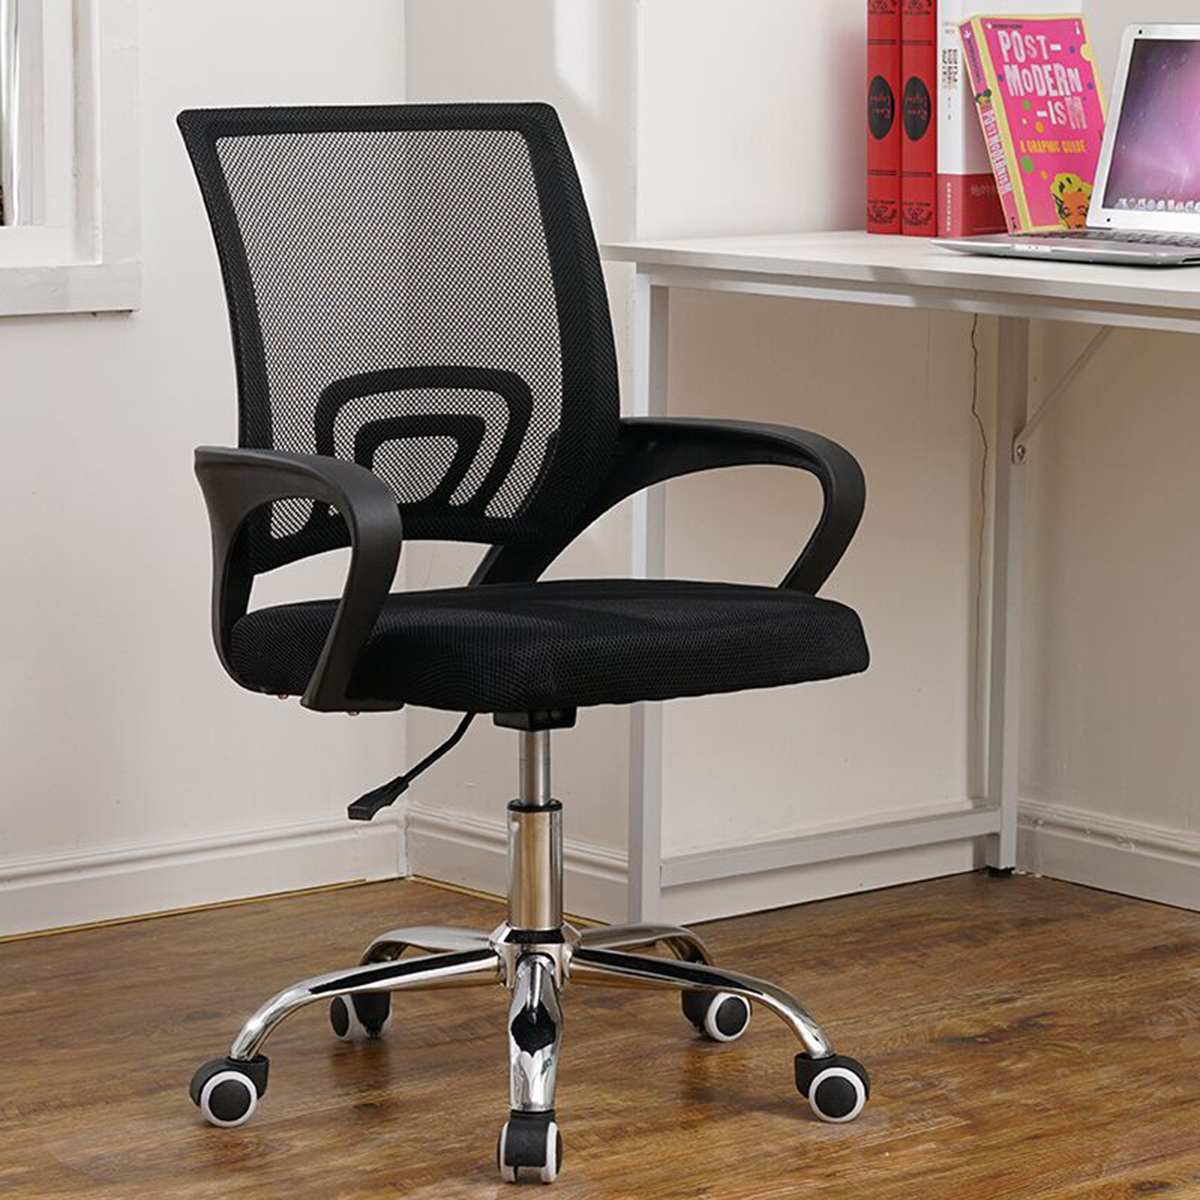 Black Ergonomic Office Chair Laptop Desk Chair Mesh Executive Computer Chair With Lumbar Support Height Adjustable US Stock